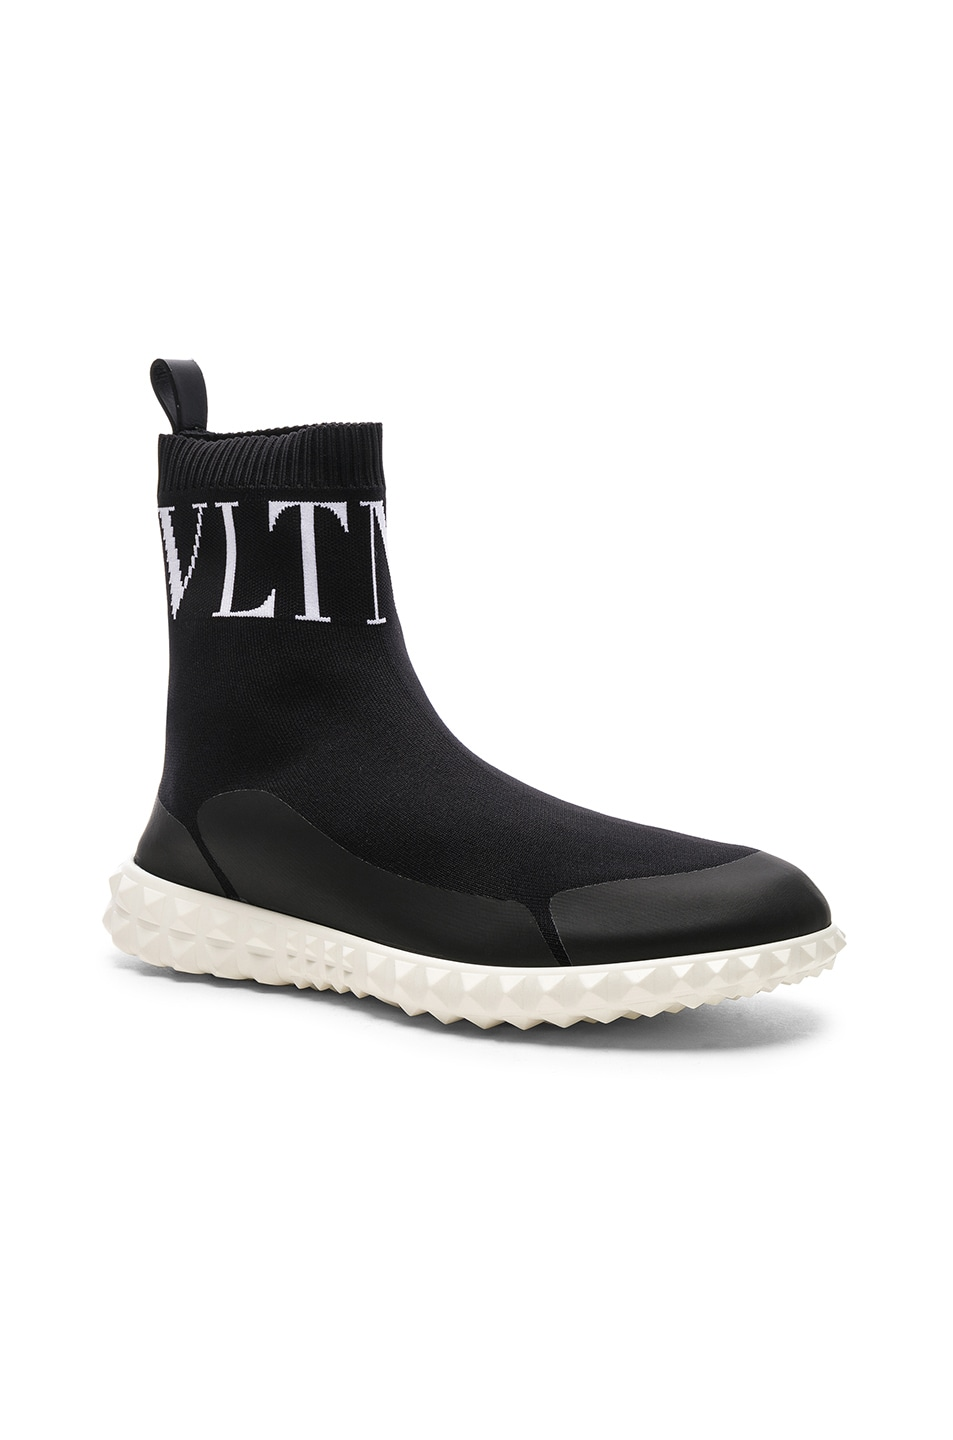 Image 3 of Valentino VLTN High Top Sock Sneakers in Black & White